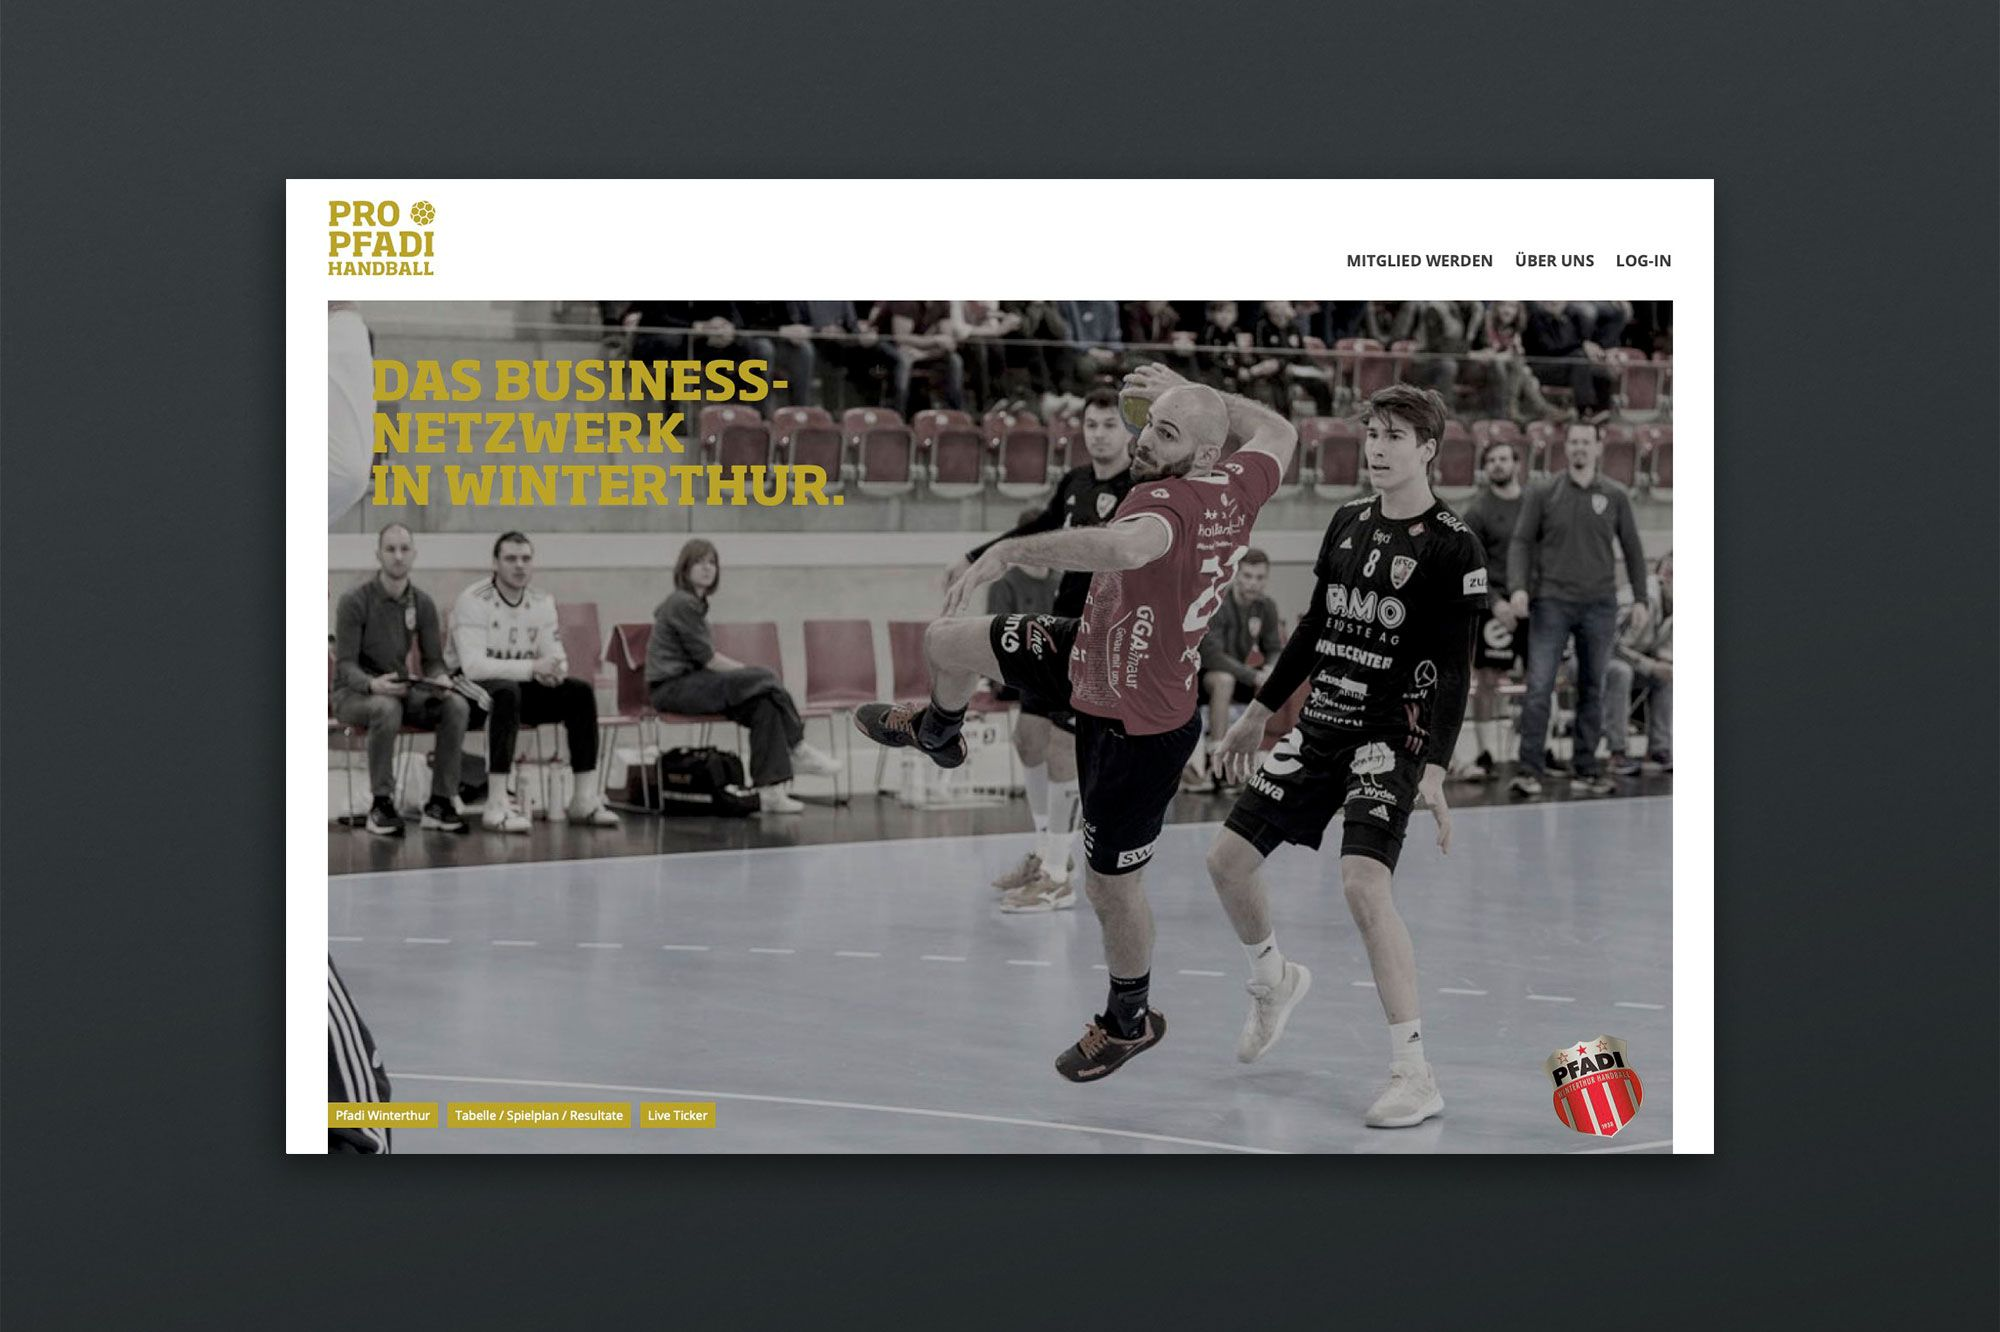 ProPfadi Website